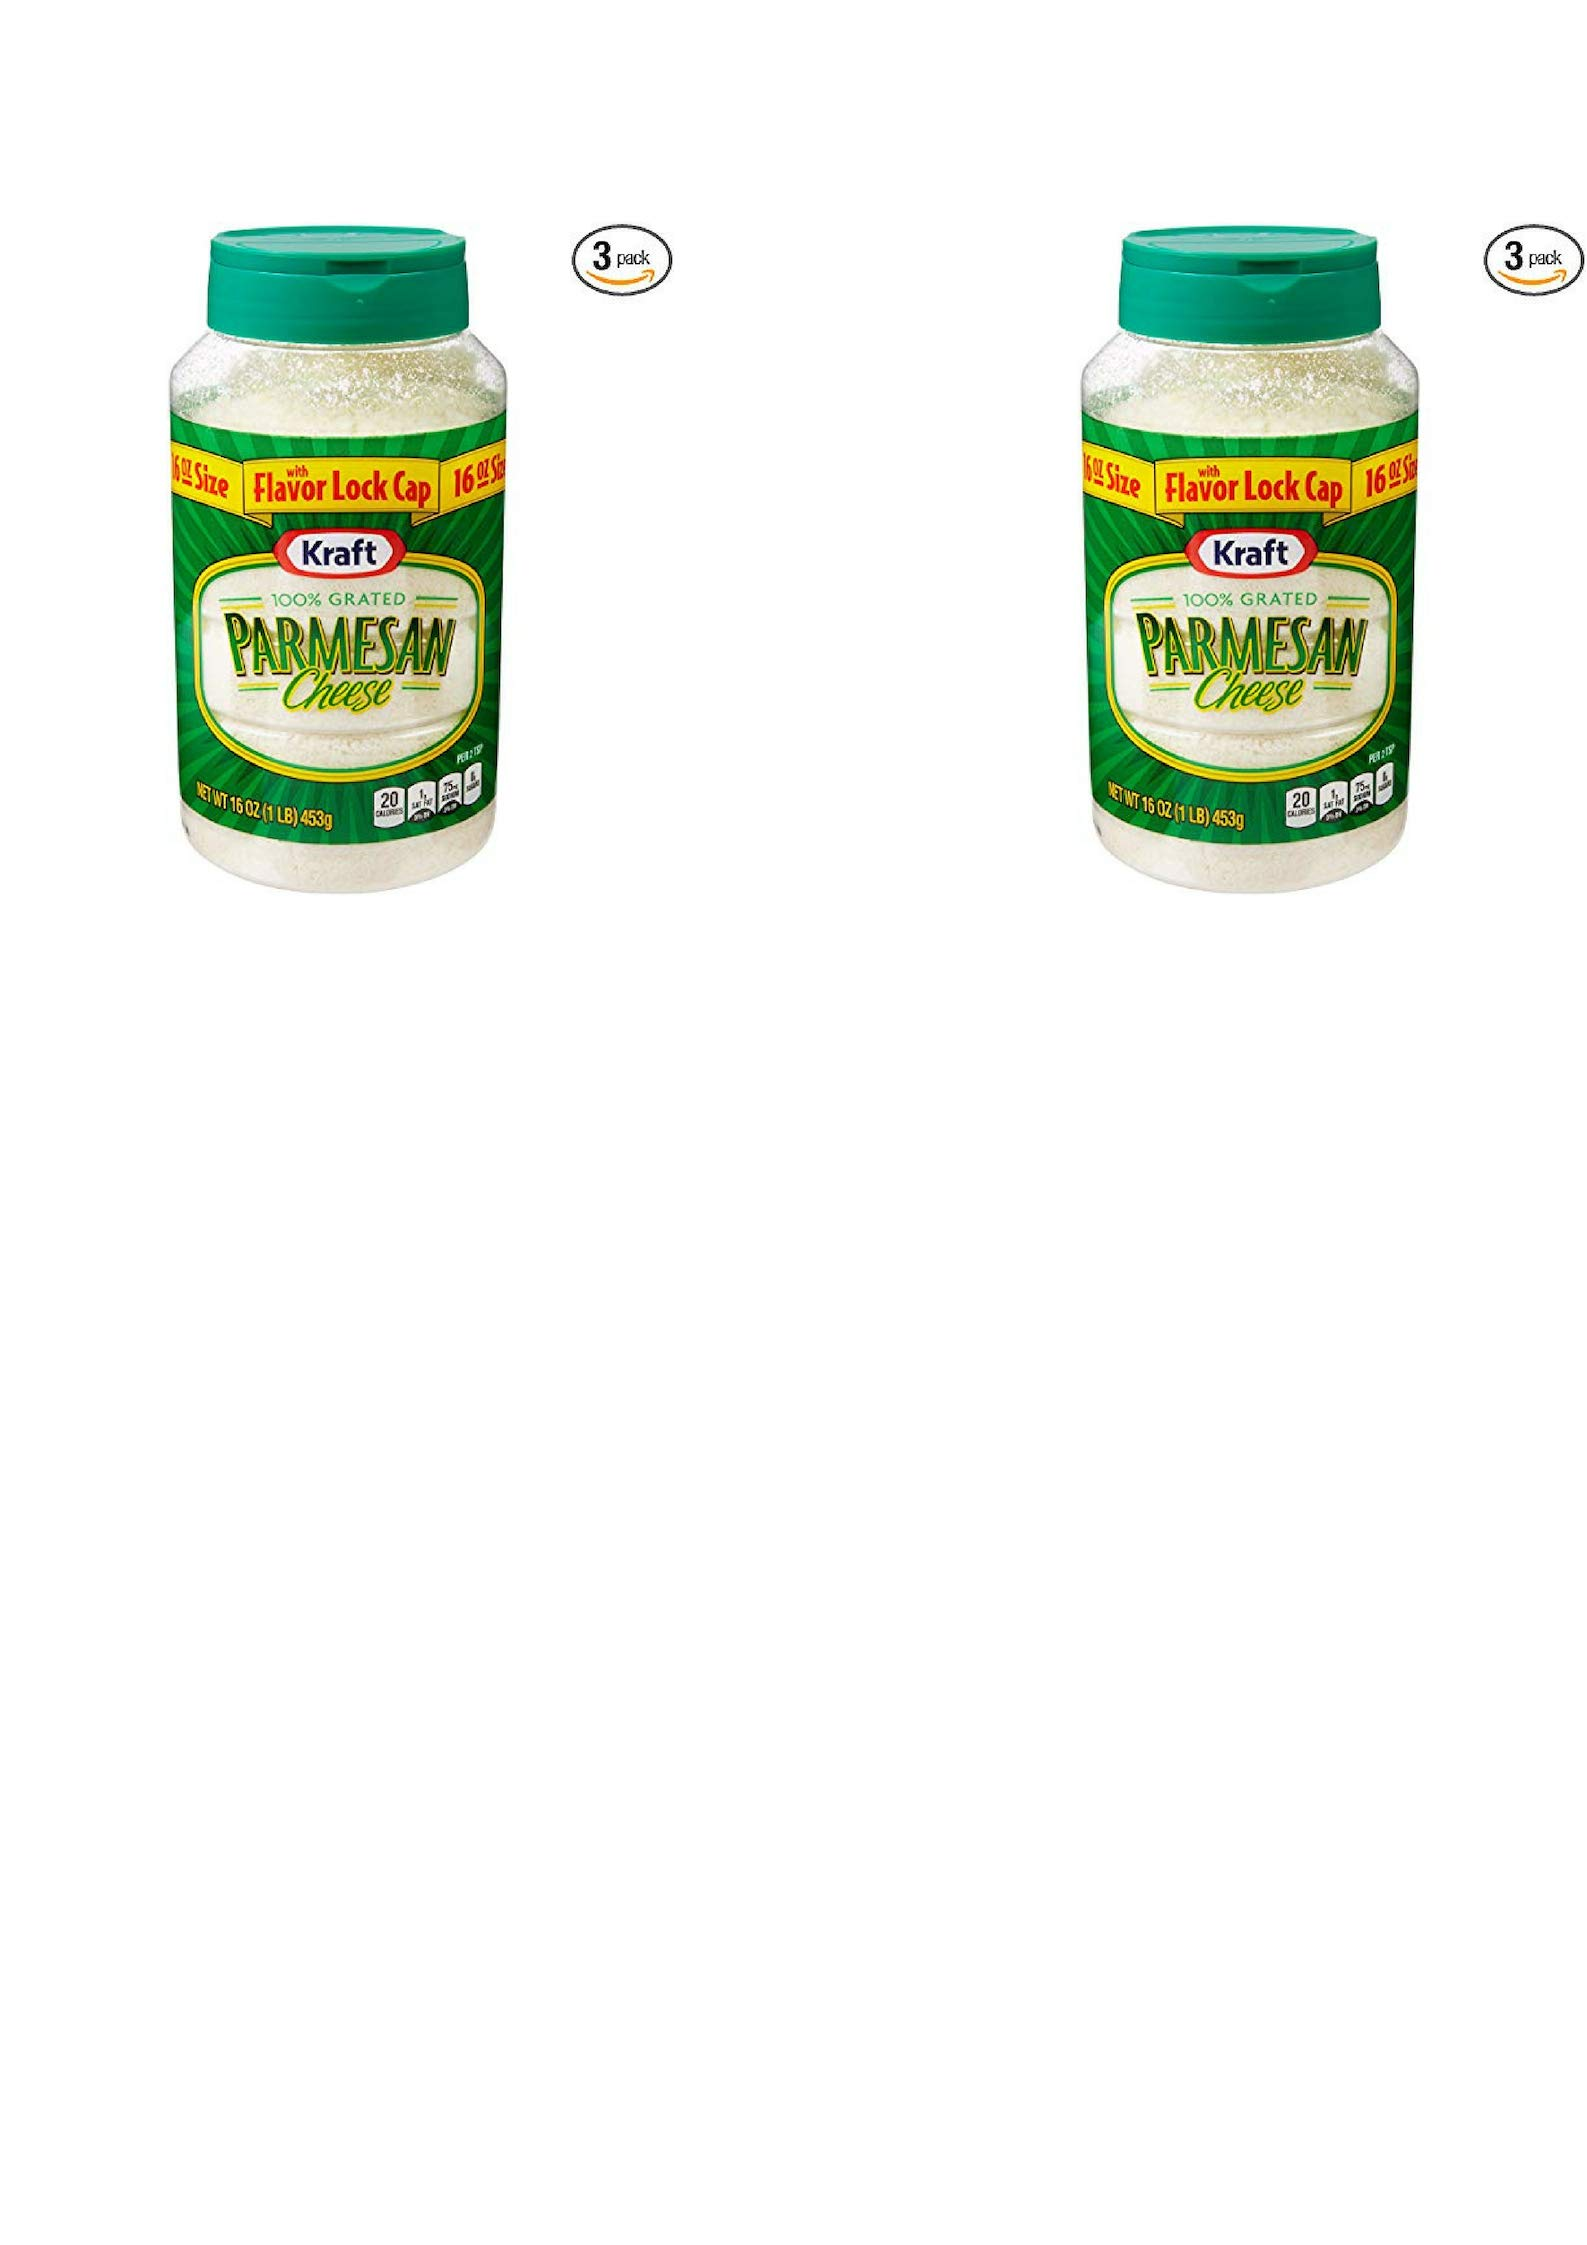 Kraft Parmesan Cheese 100% Grated 16-ounce Plastic Canister (Pack of 2) by Kraft